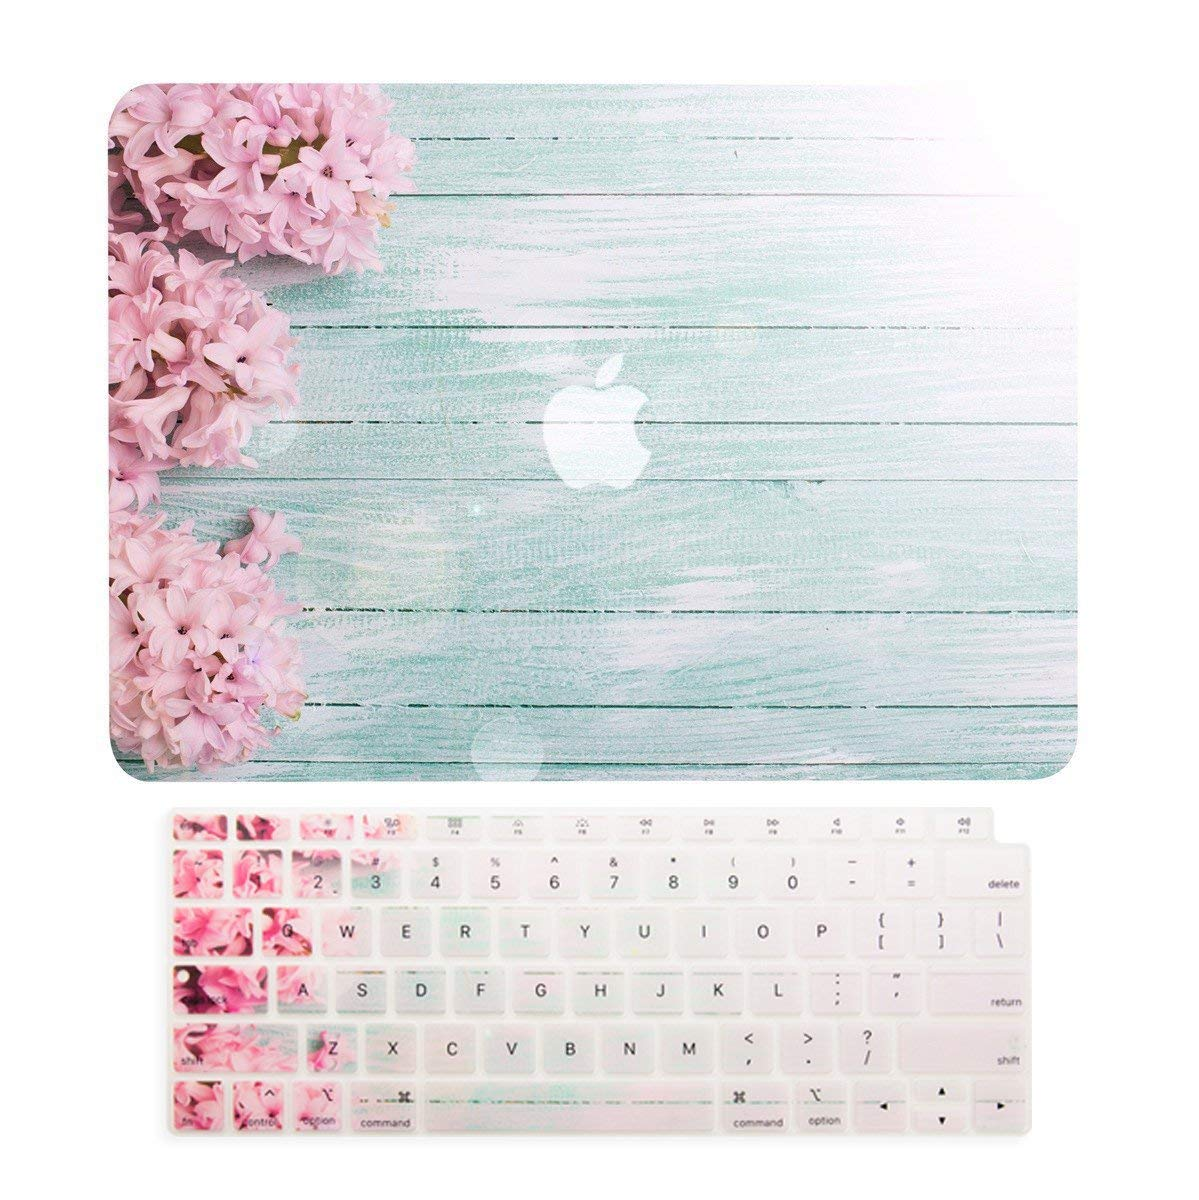 TOP CASE - 2 in 1 Floral Pattern Rubberized Hard Case + Keyboard Cover Compatible with 2018 Release MacBook Air 13 Inch with Retina Display fits Touch ID Model: A1932 - Pink Hyacinth